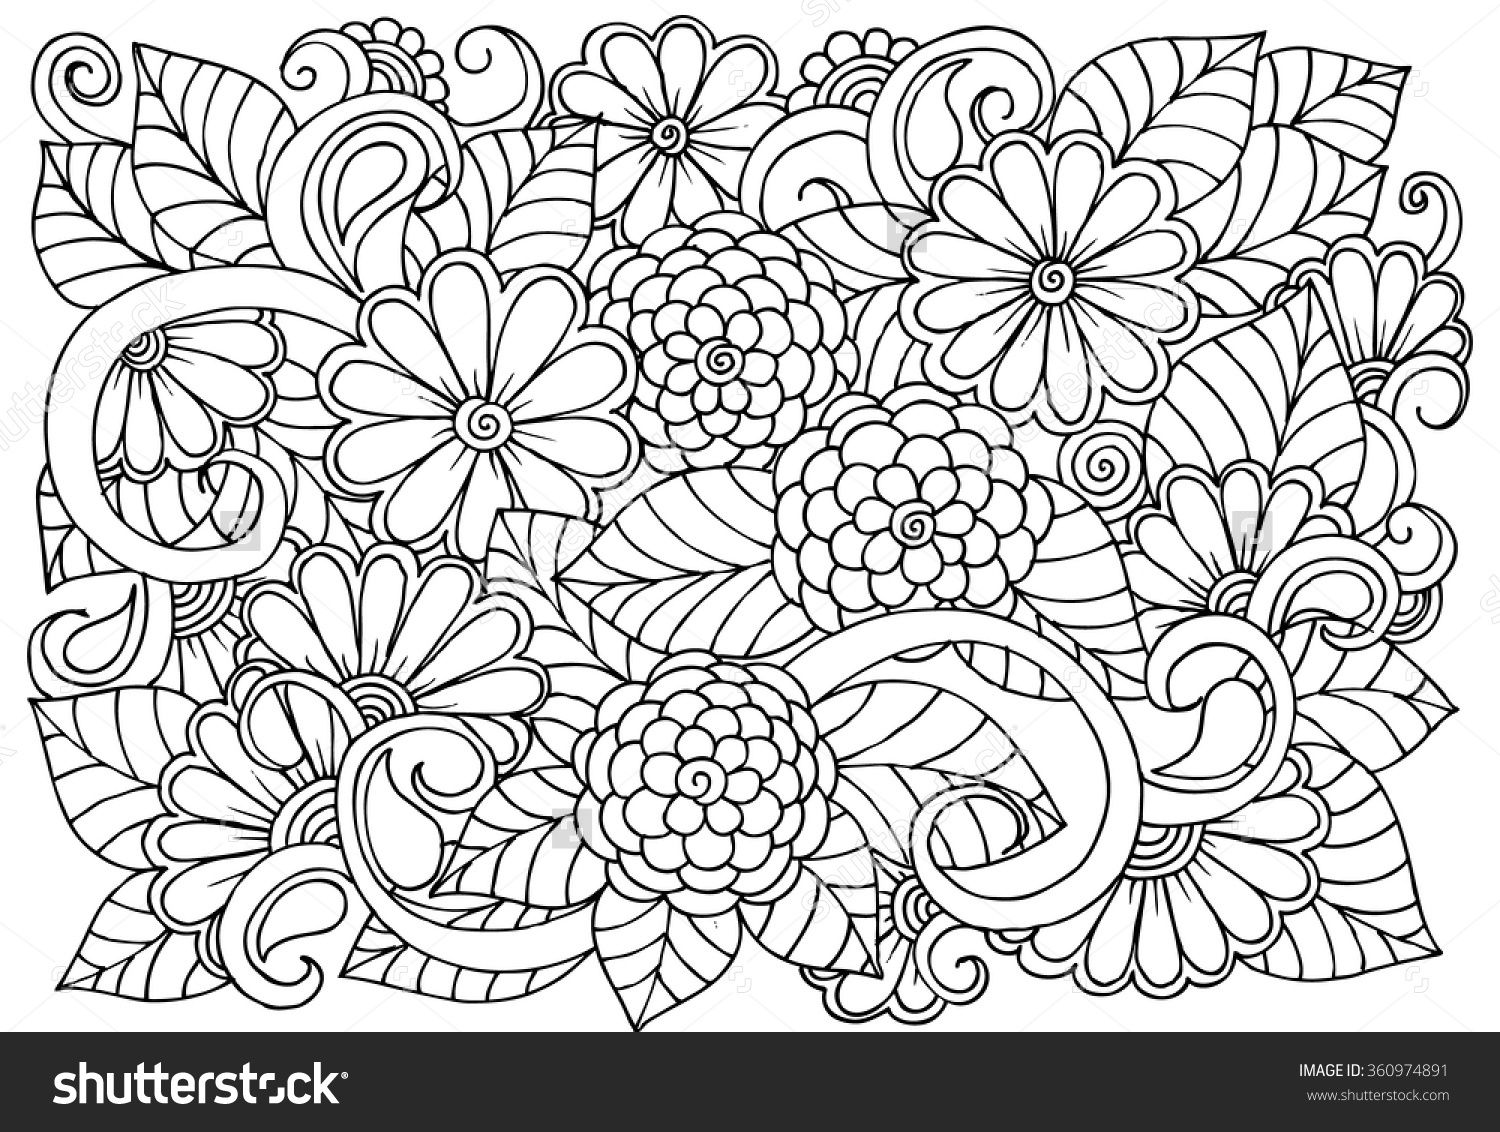 coloring pages designs patterns - photo#24